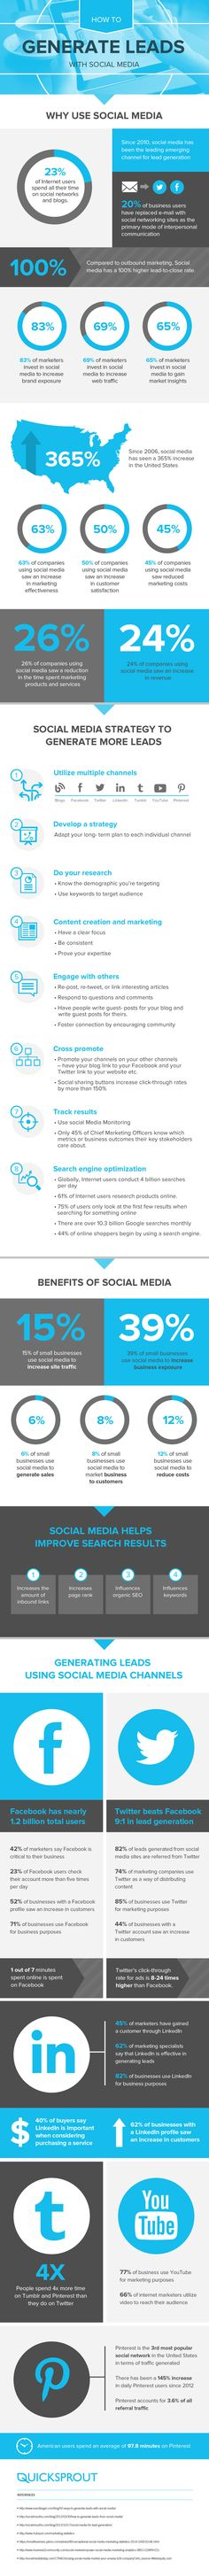 367 best INFO images on Pinterest Digital marketing, Infographic - sales lead tracking spreadsheet